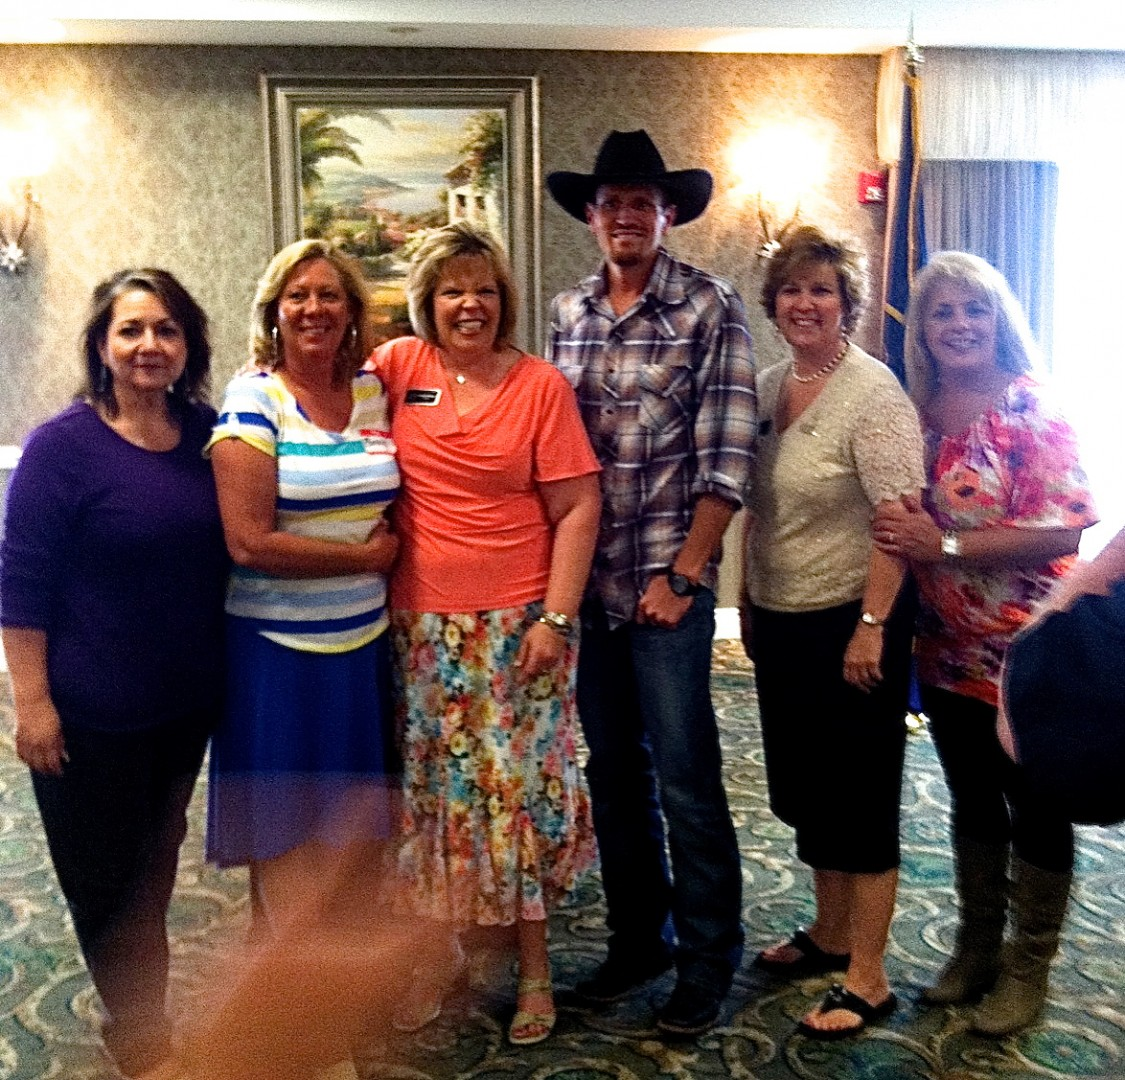 """L to R: Lil Barron (ret. Workers Compensation Fund), Bonnie Pendleton (The Plant Lady), Debbie Hofhines (Woman of the Year 2013), Eric Dodge (Country Music Artist), Julie Williamson (Woman of the Year 2012; Morris Murdock Travel), and Nina Heck (Oh My Heck Marketing). Utah Business Women """"Woman of the Year"""" award luncheon, Abbey Inn, St. George, Utah, April9, 2013 